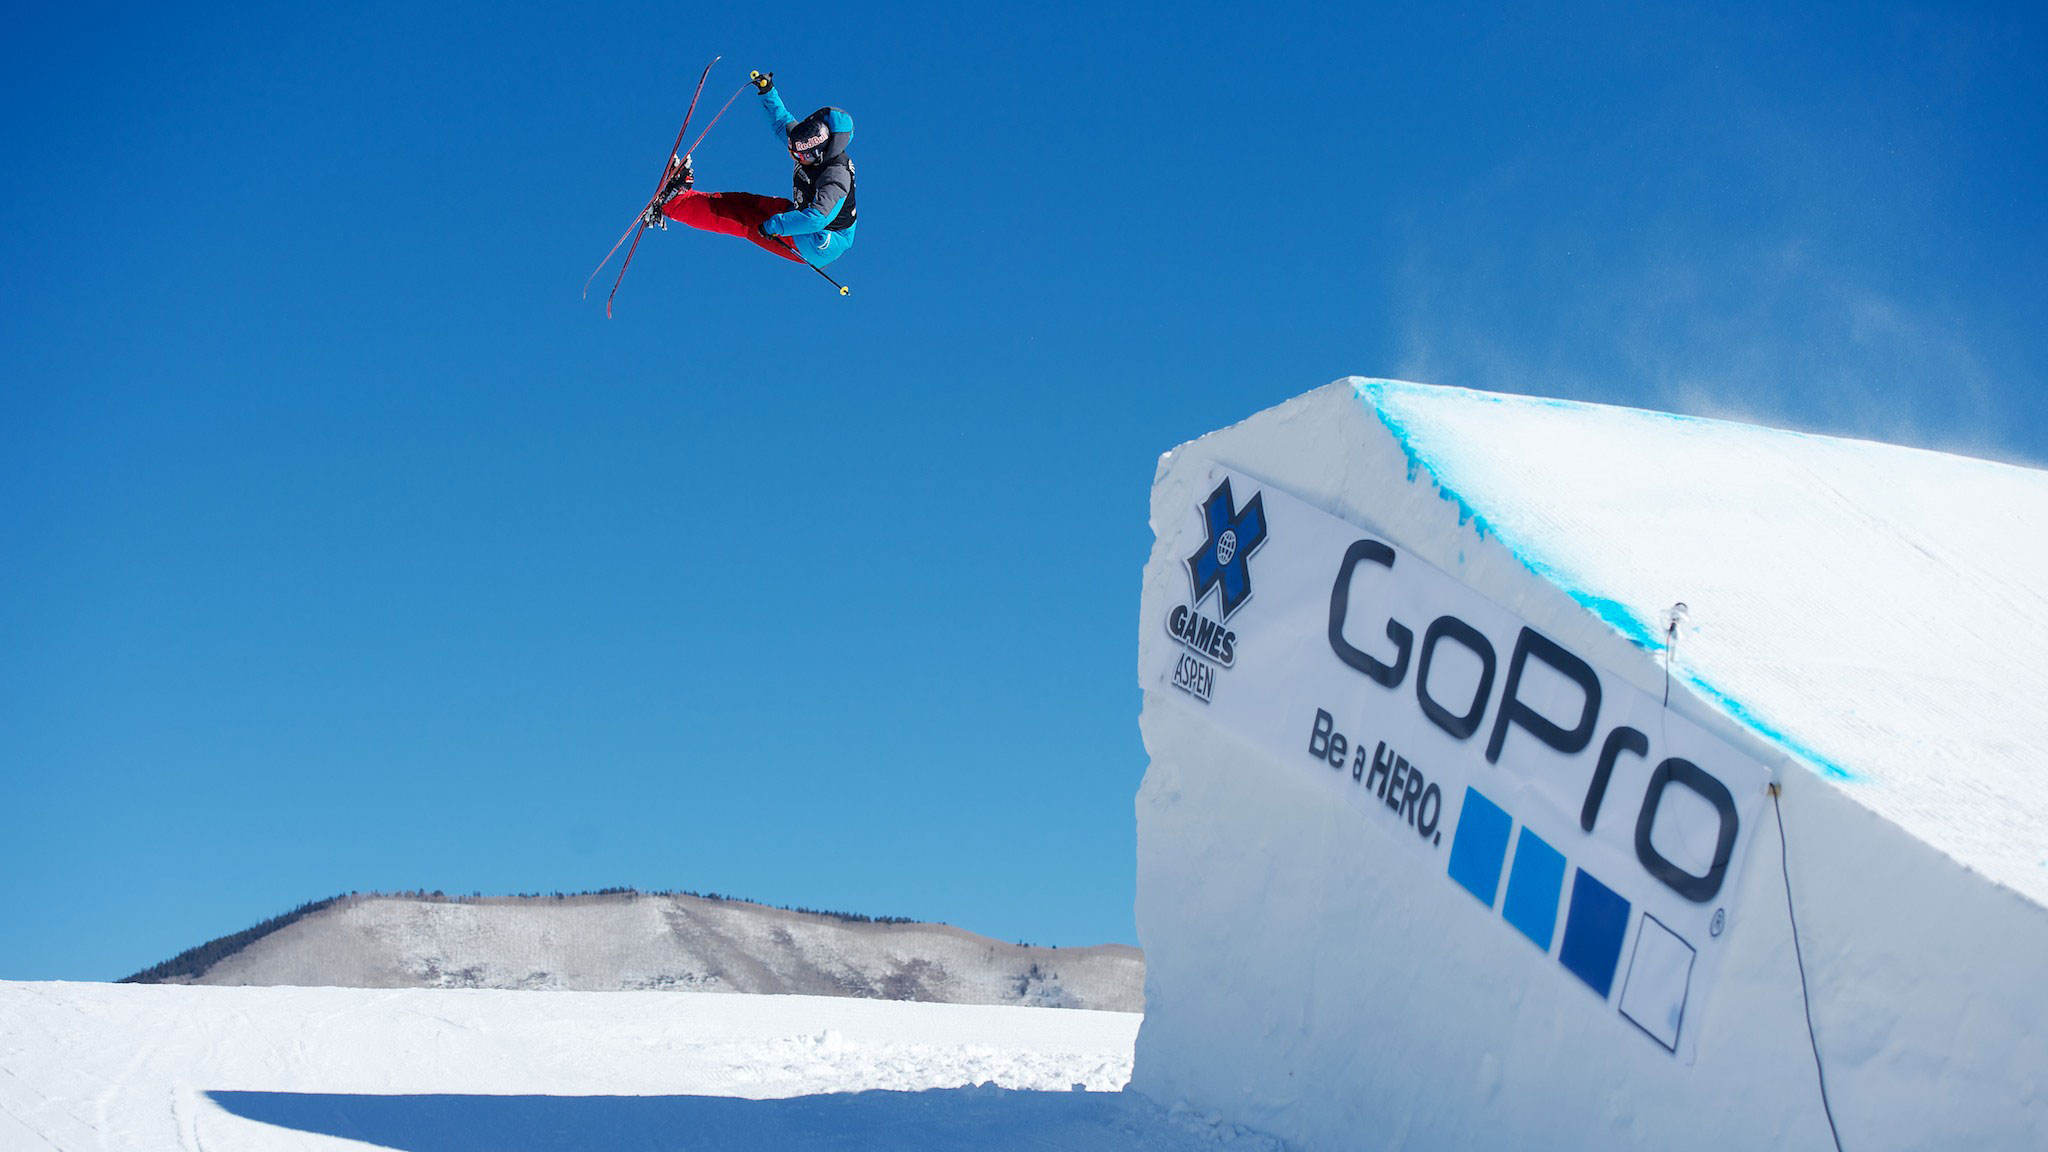 PK Hunder from Norway will be competing in ski slopestyle at the Winter Olympics after a recent knee injury.